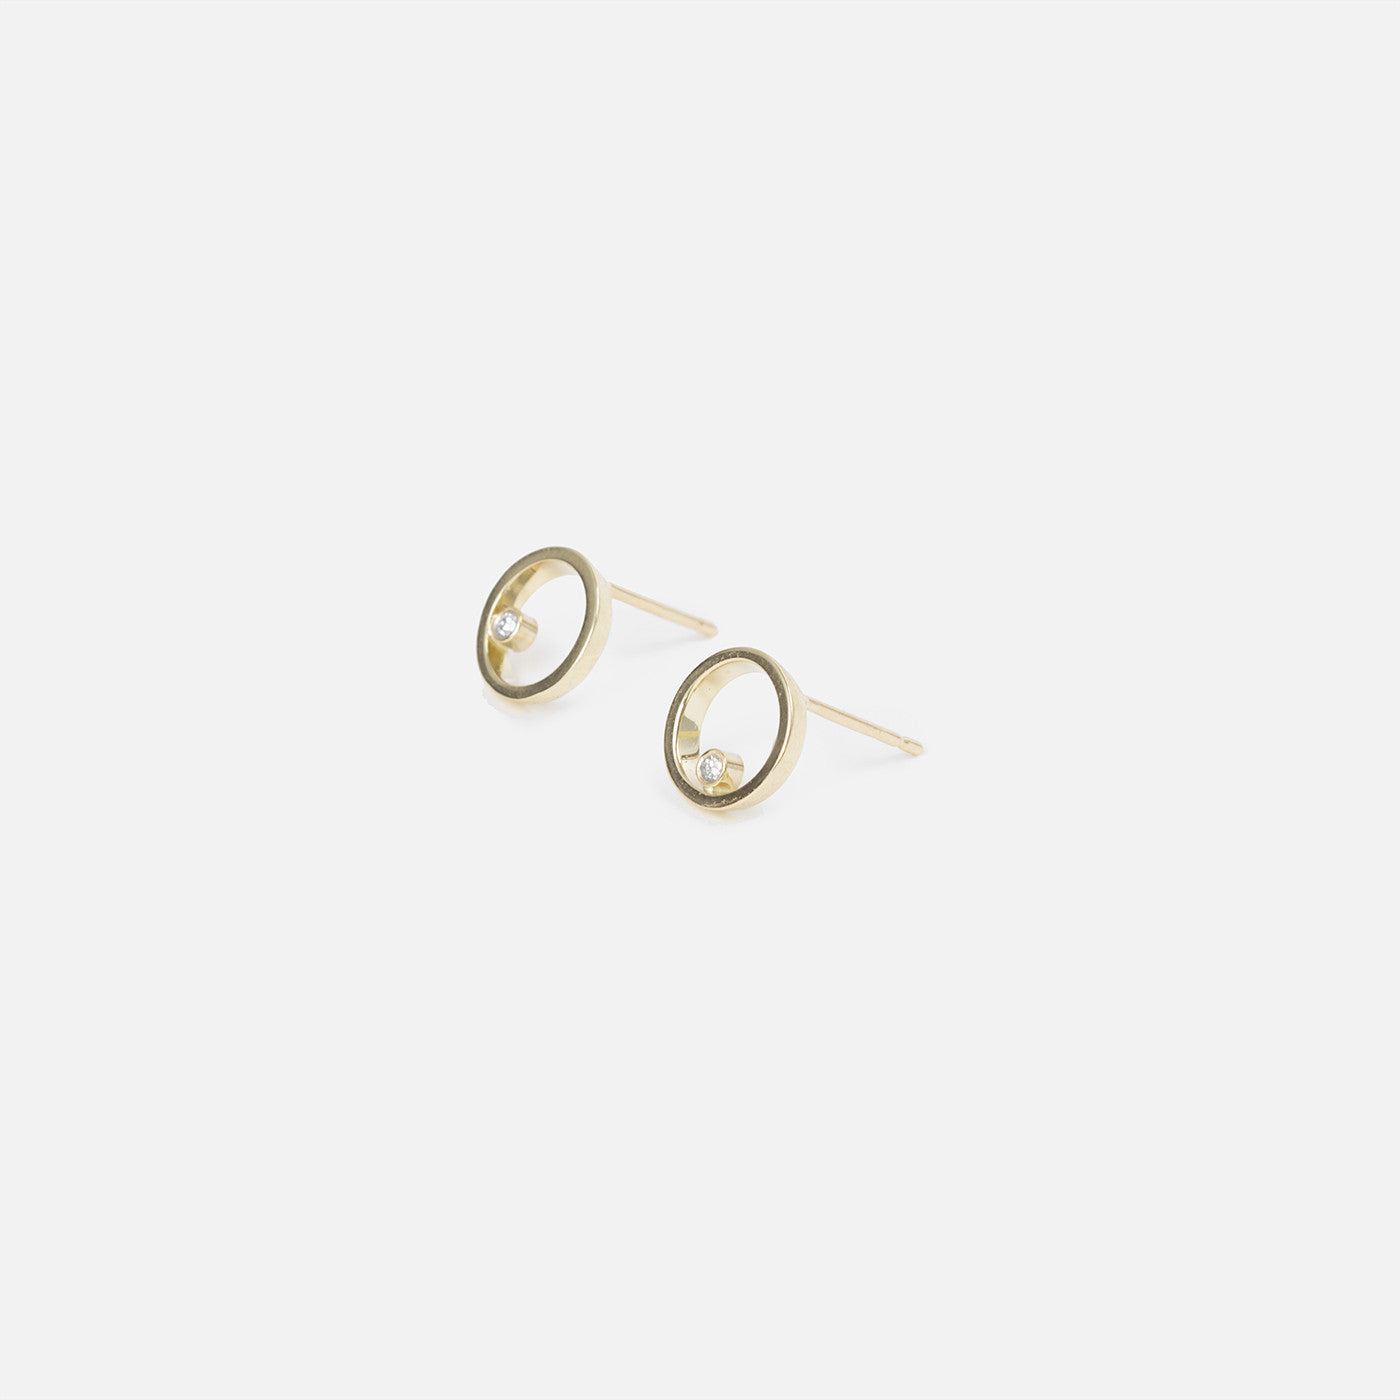 rings ear craft collection lauren earrings kaur products